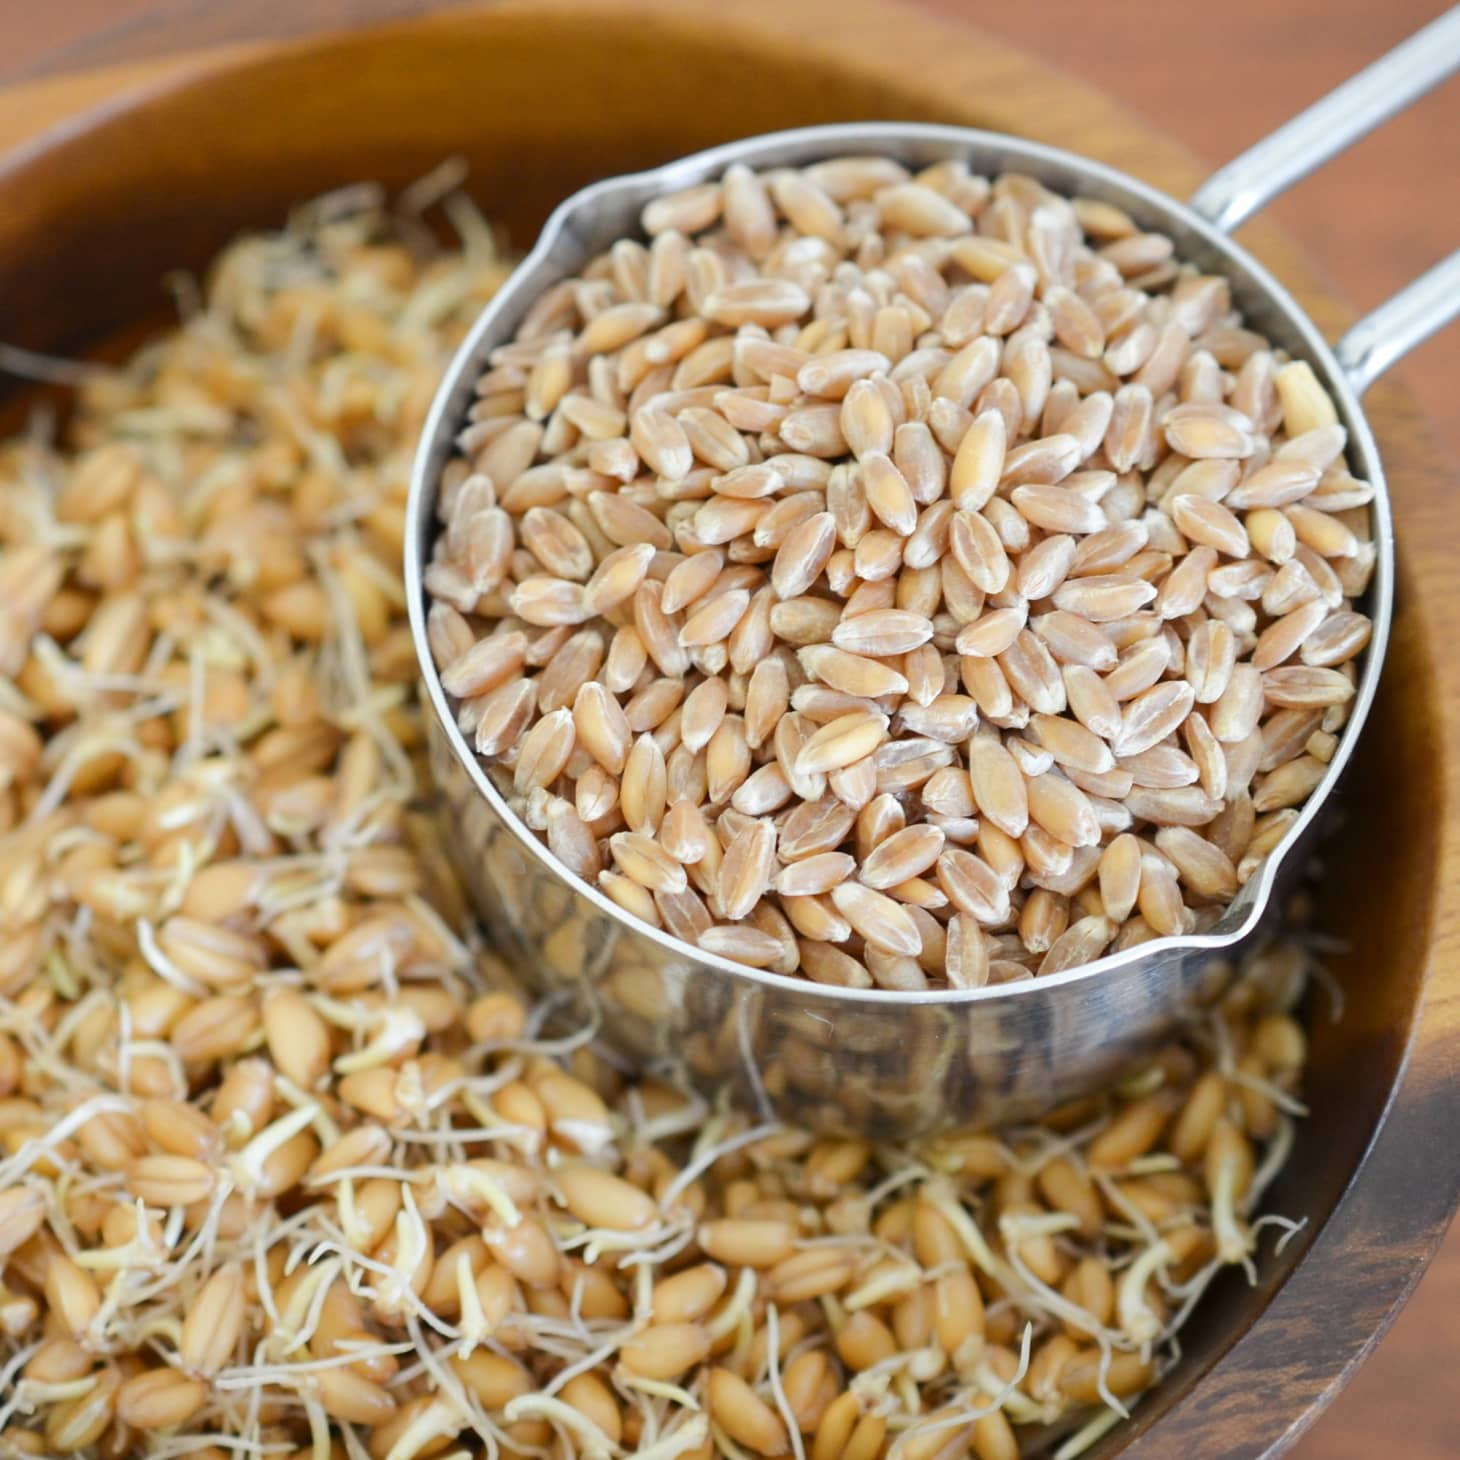 How To Make Sprouted Grains